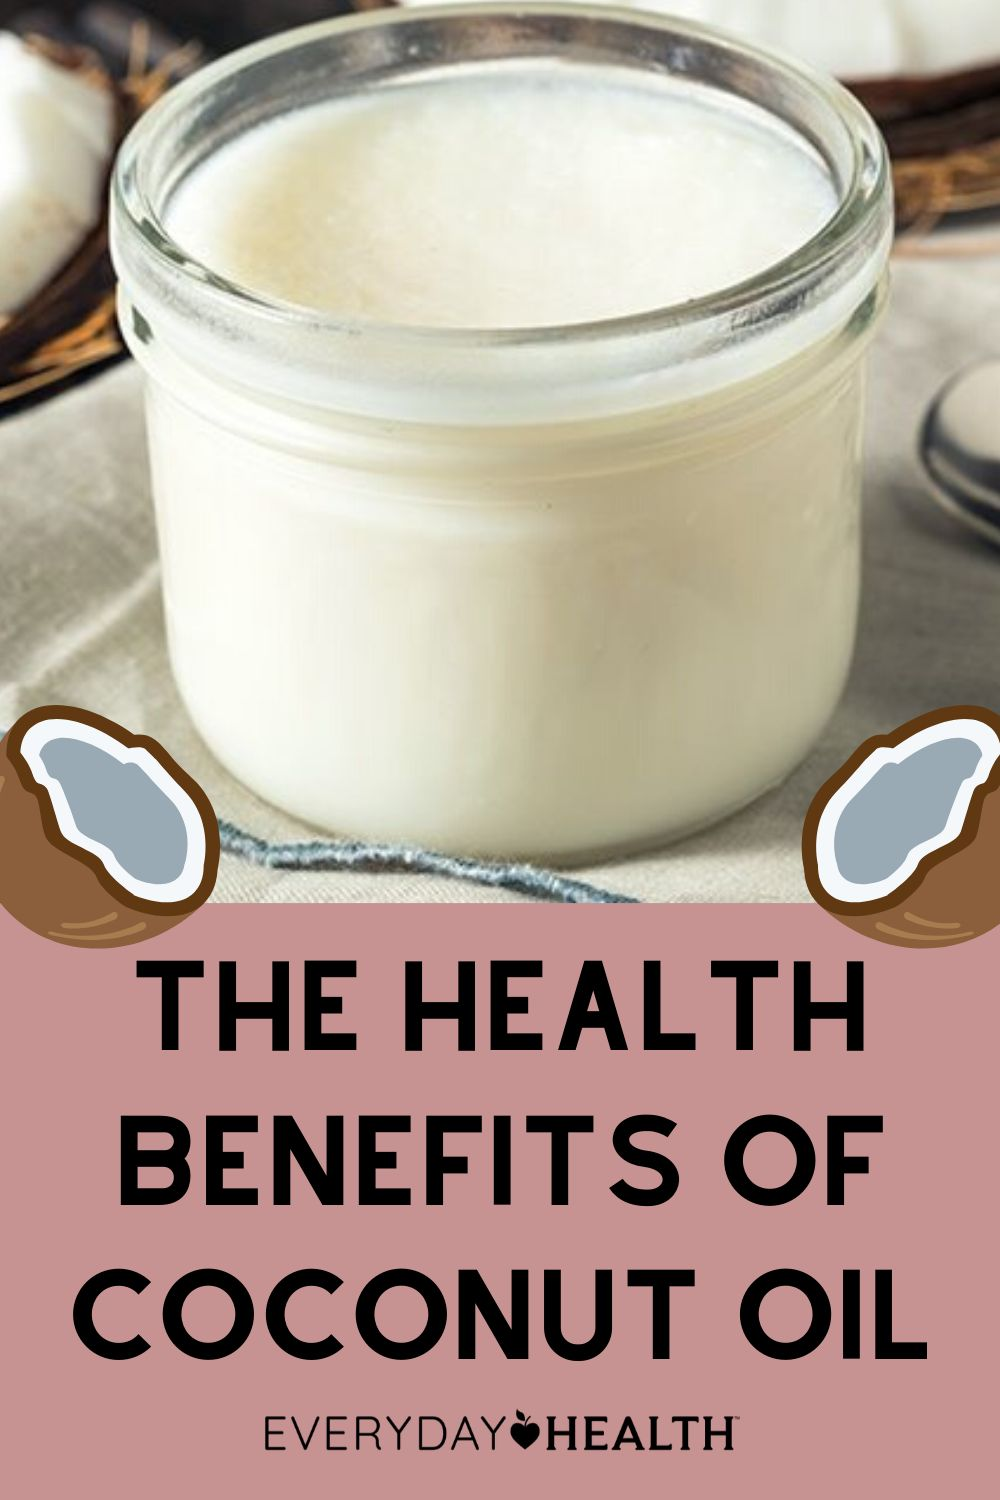 Coconut Oil: Health Benefits, Nutrition Facts, Uses, and More | Everyday Health